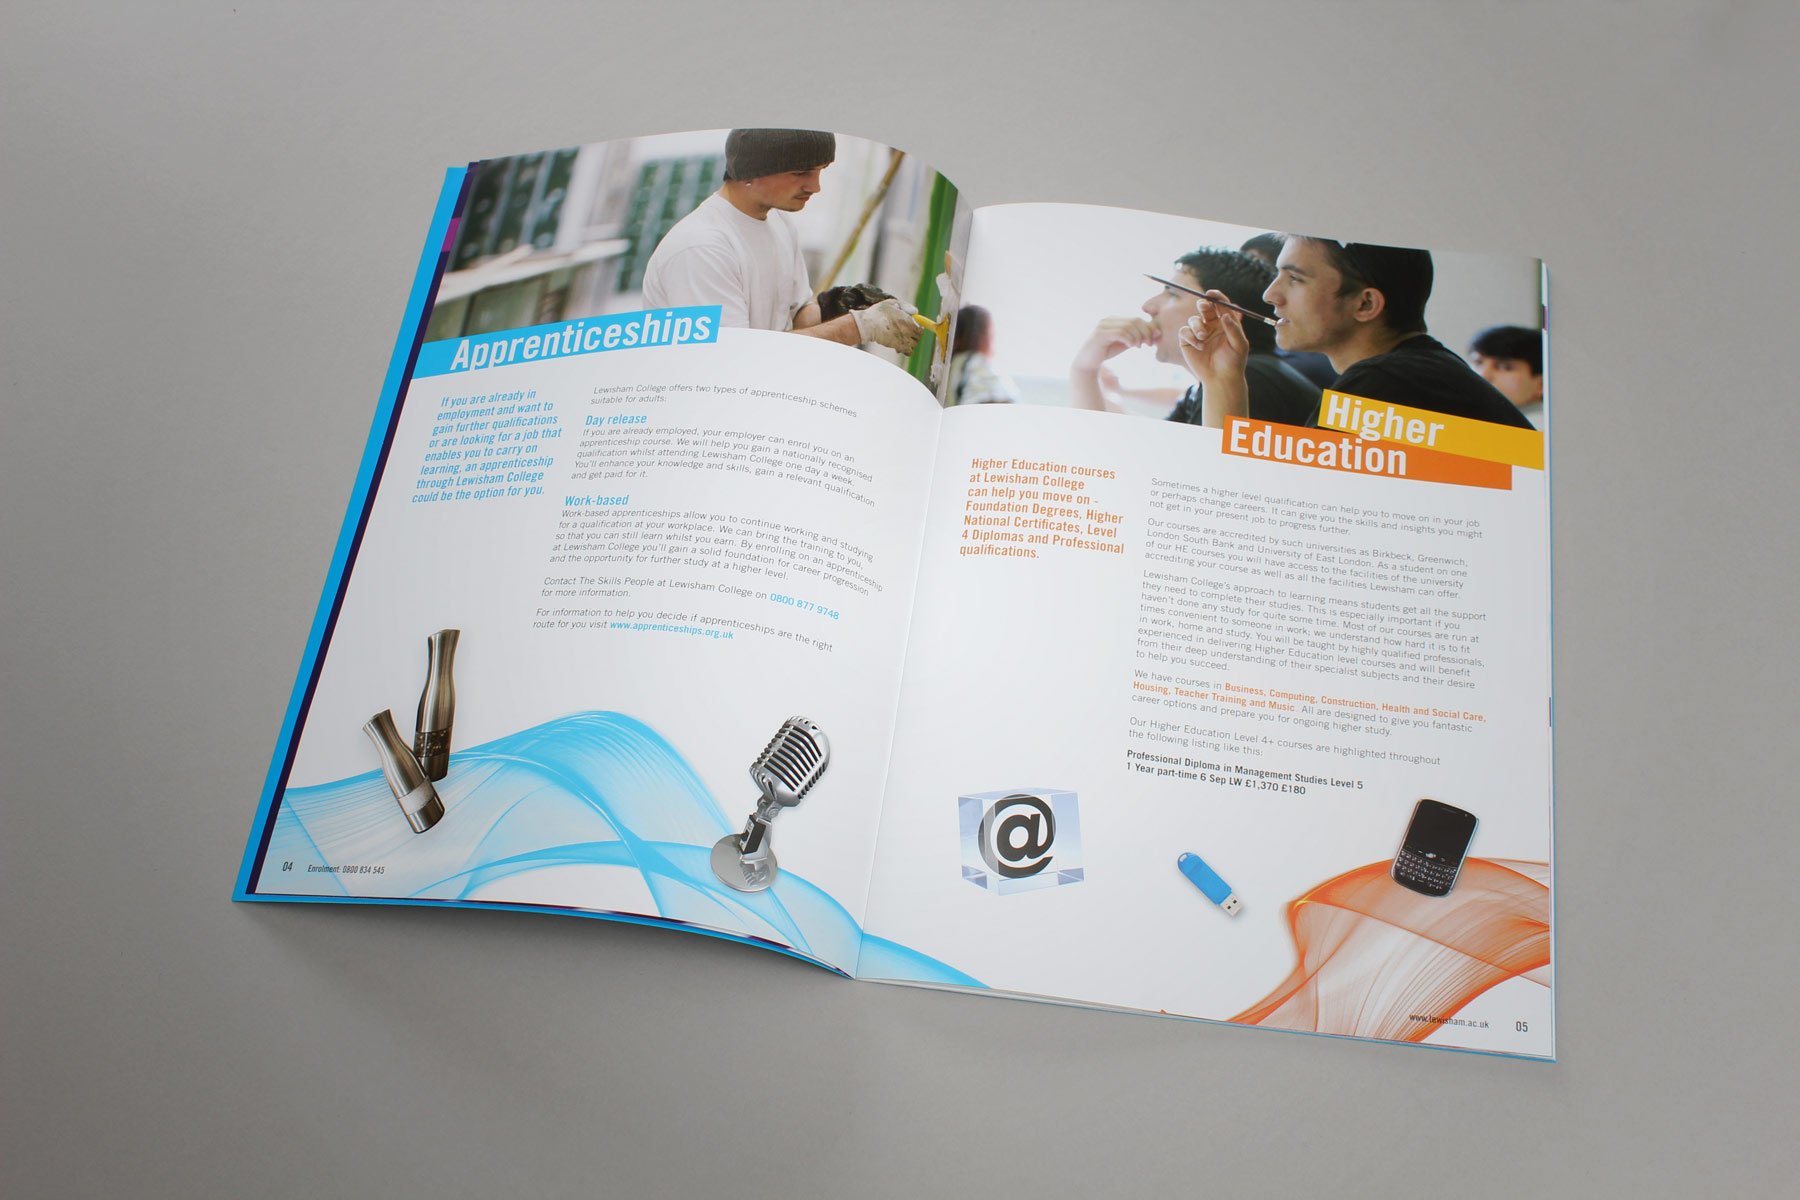 We also have integrated the visual language with the above the line campaign materials which preceded the guide. This helps the audience make a connection between the materials.